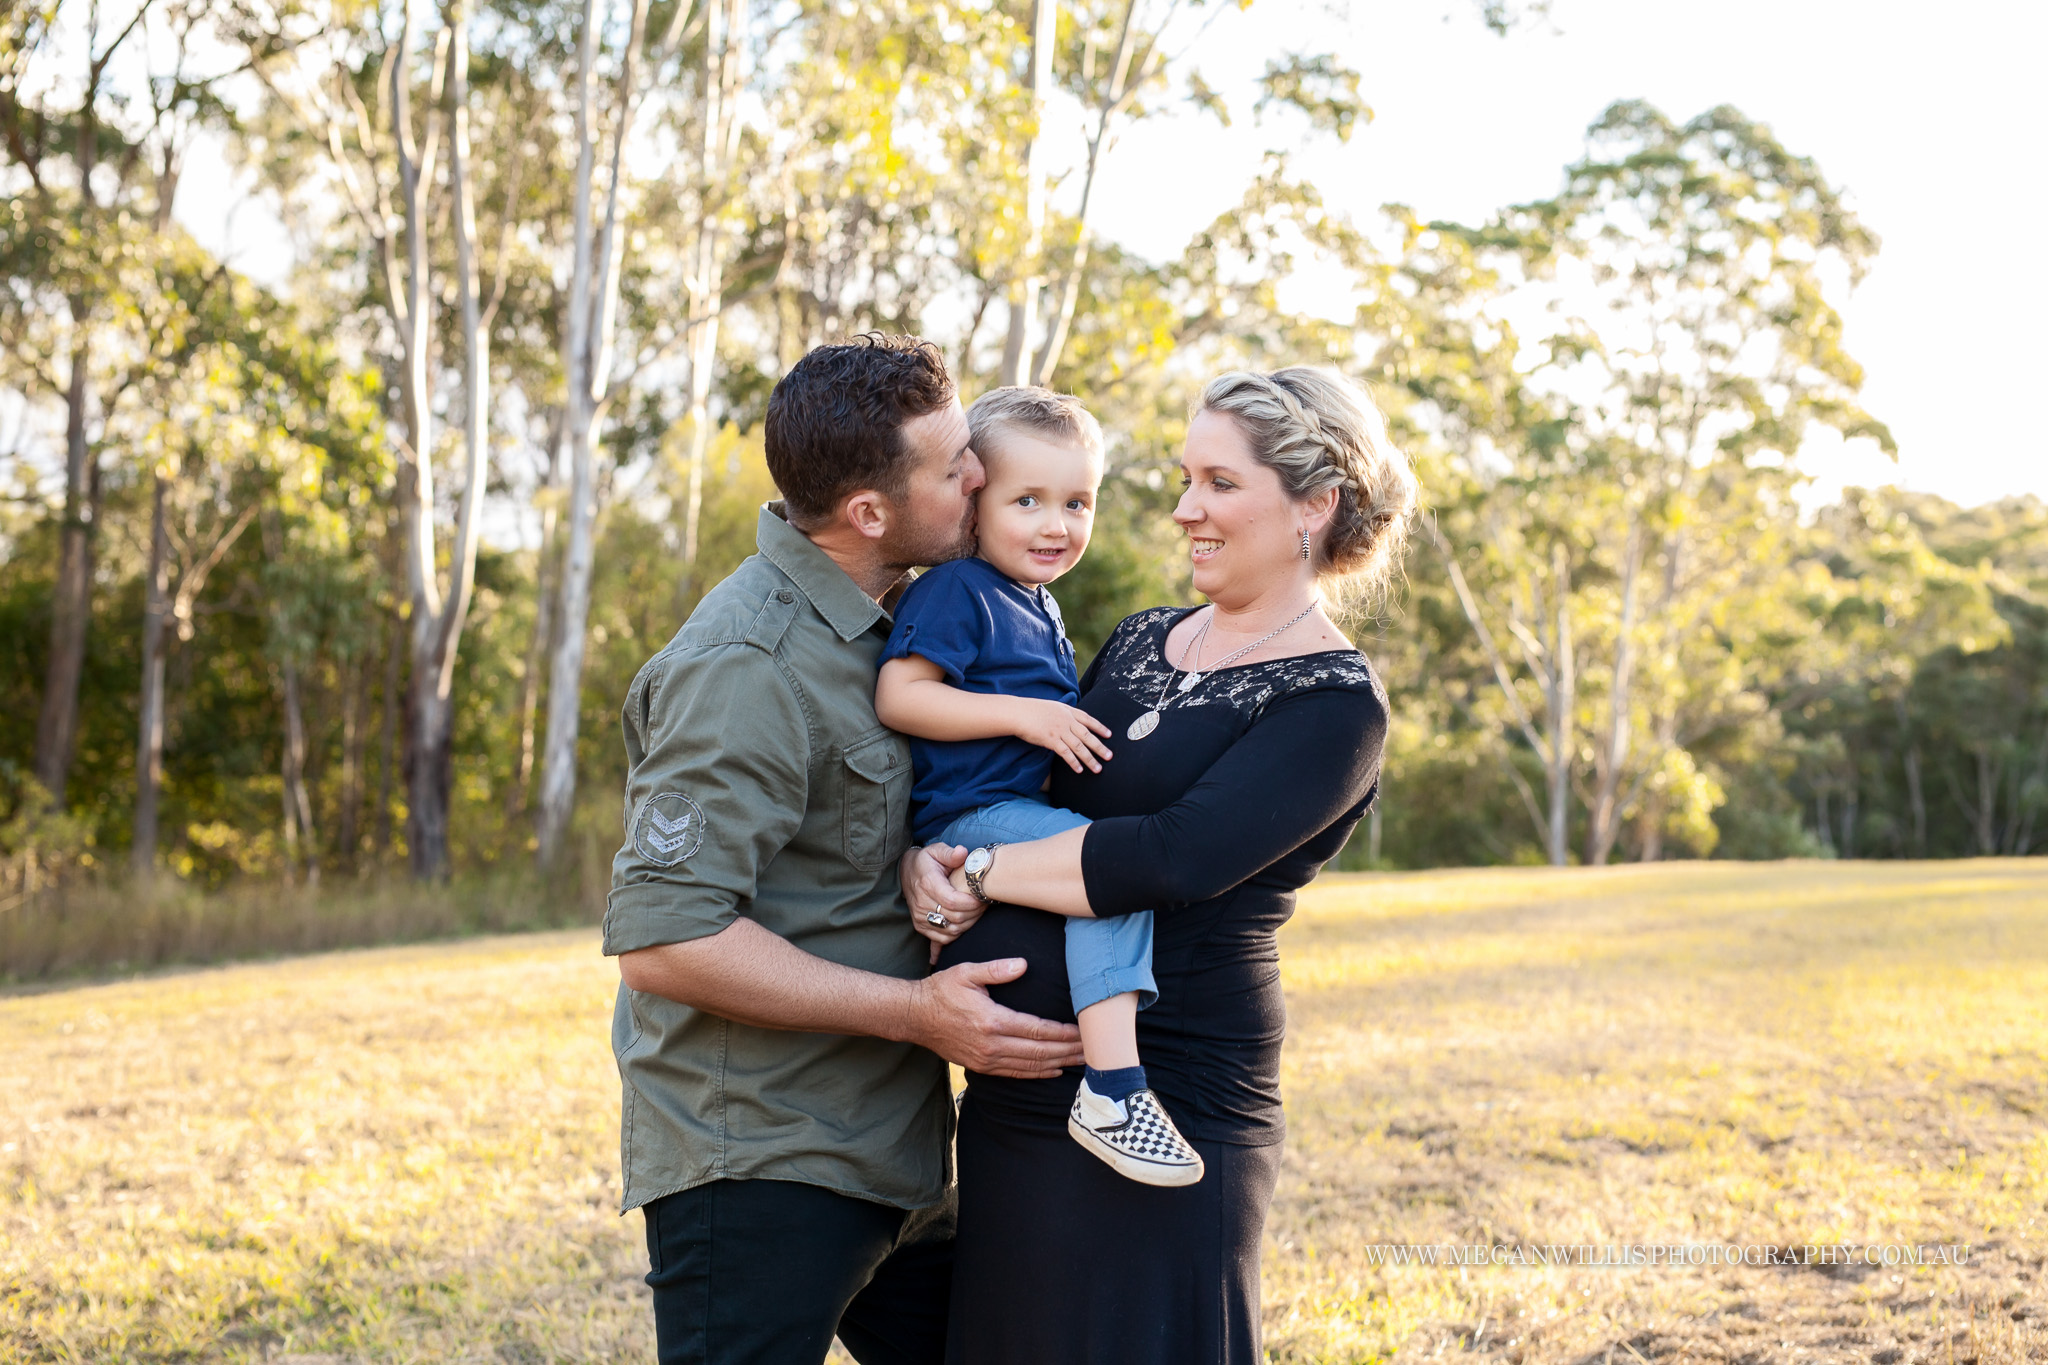 Robyn // Toowoomba Maternity Session // May 2015